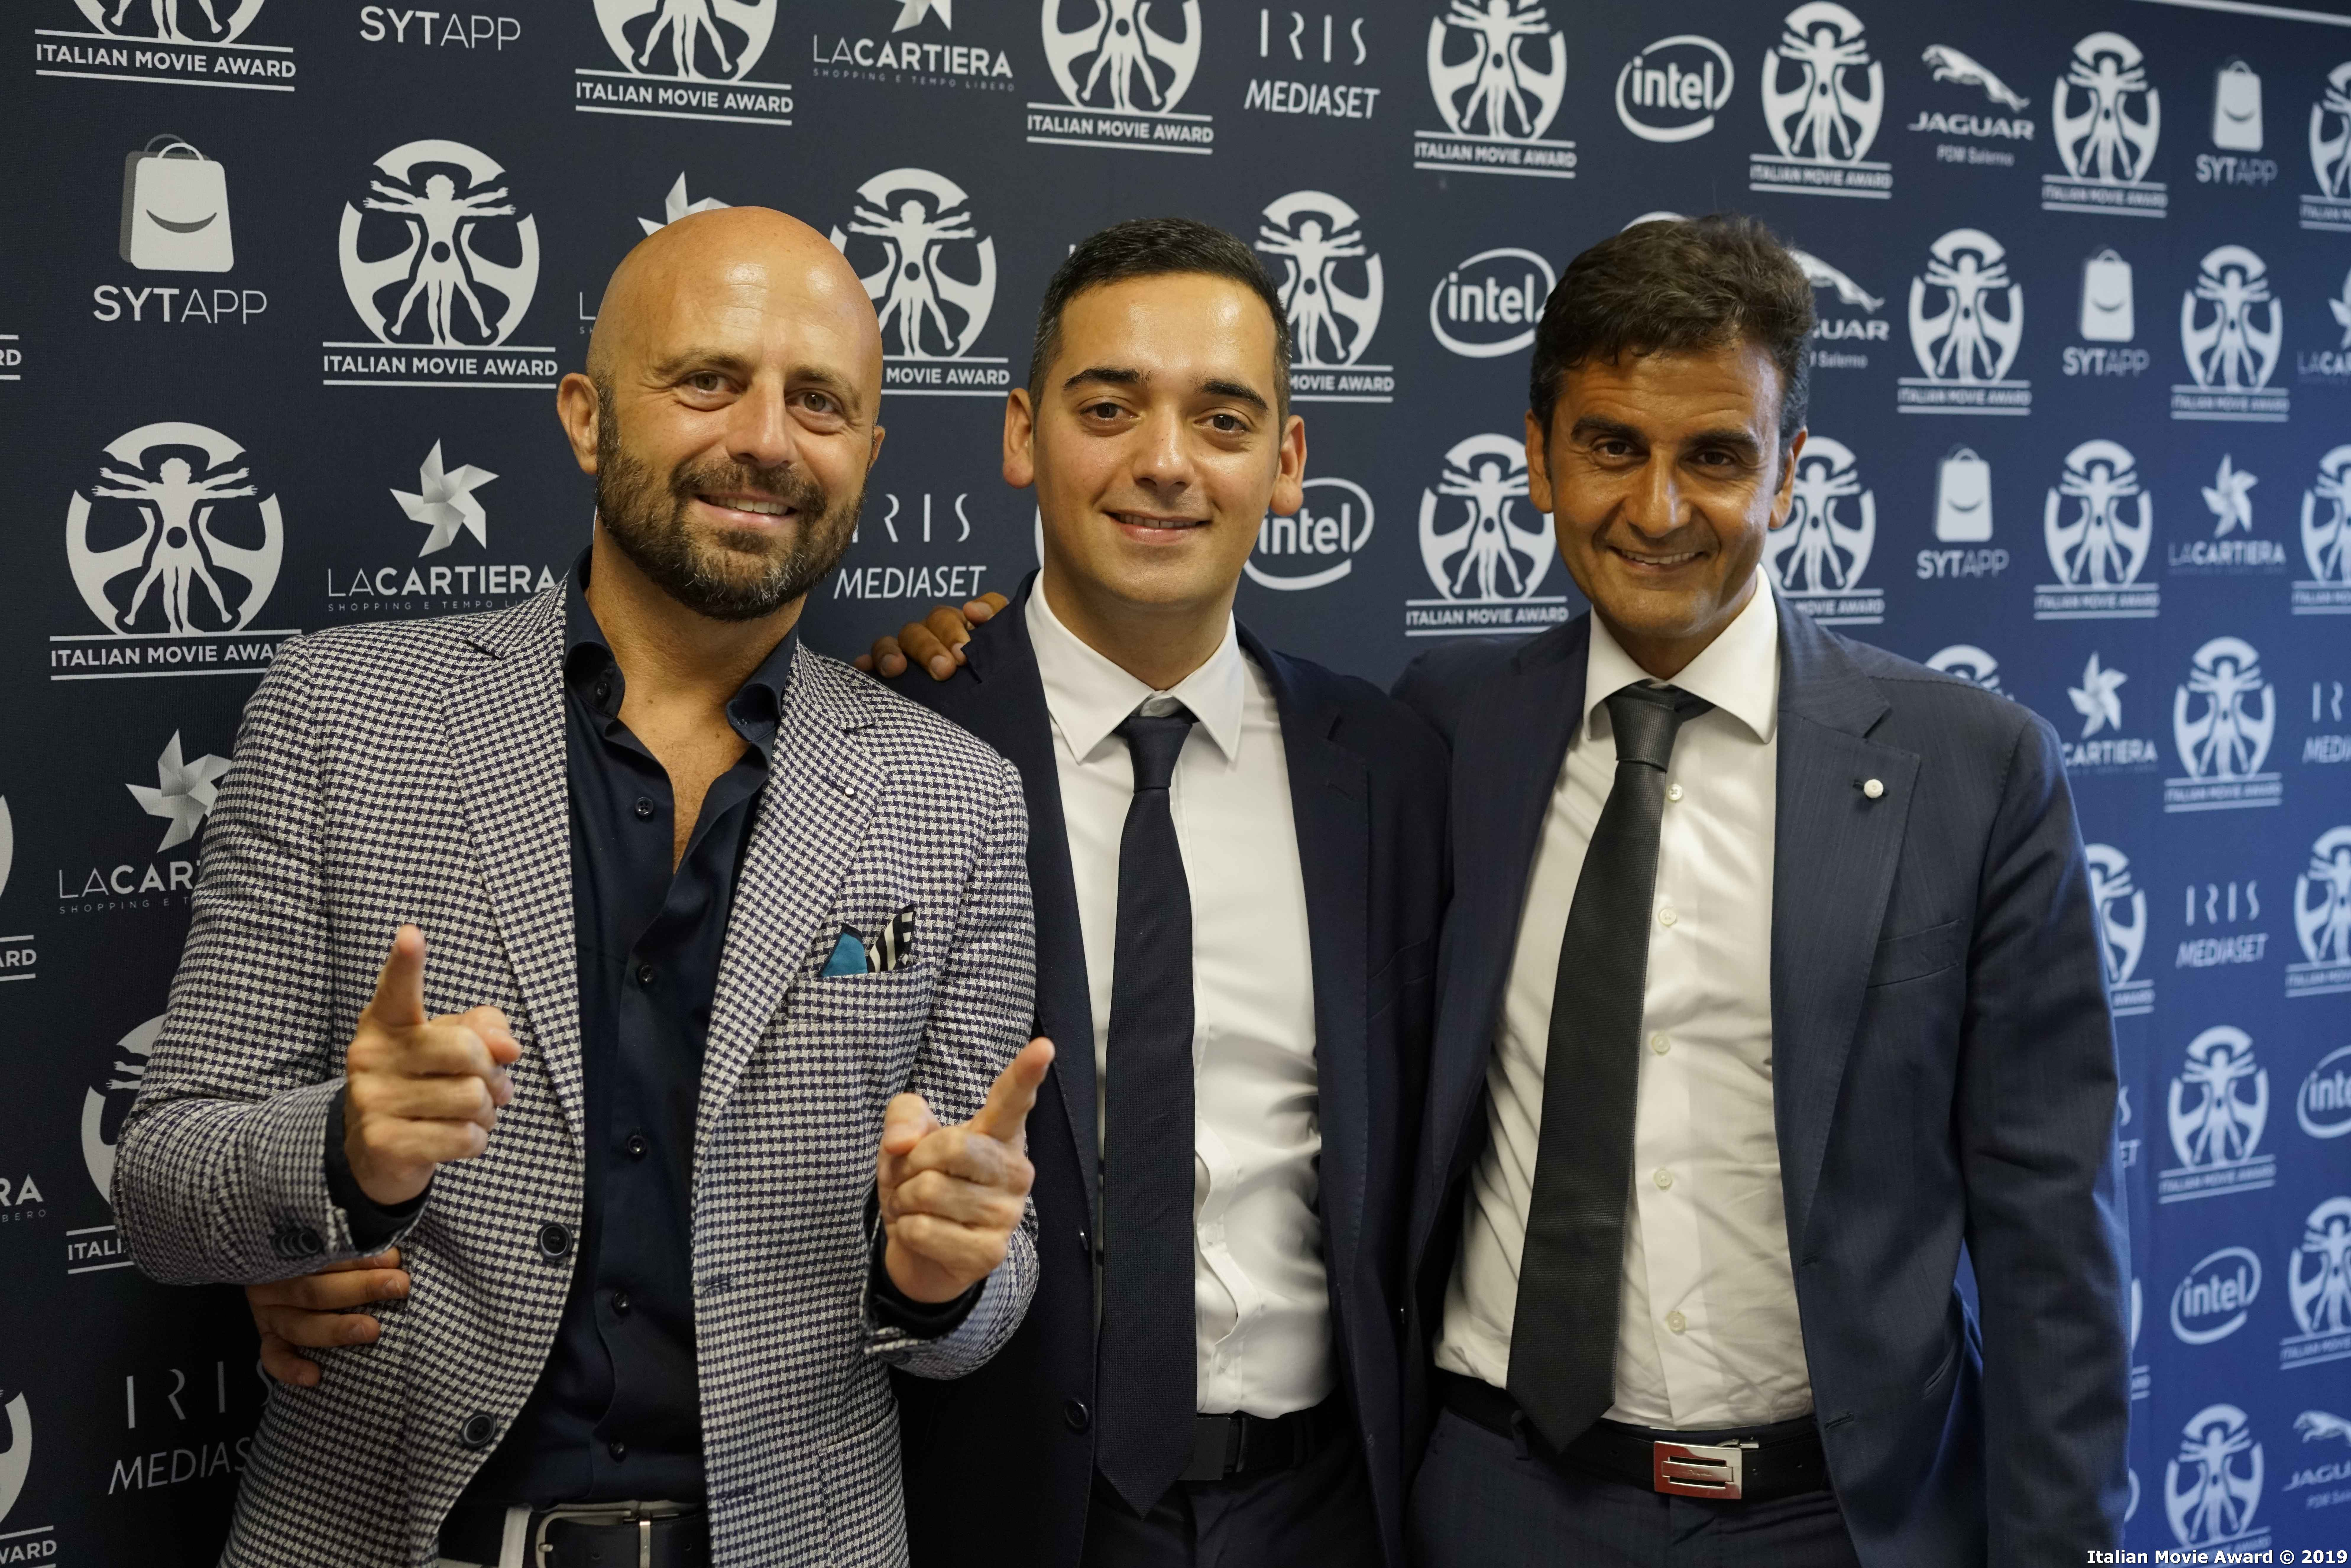 italian_movie_award_2019_conferenza_1_41